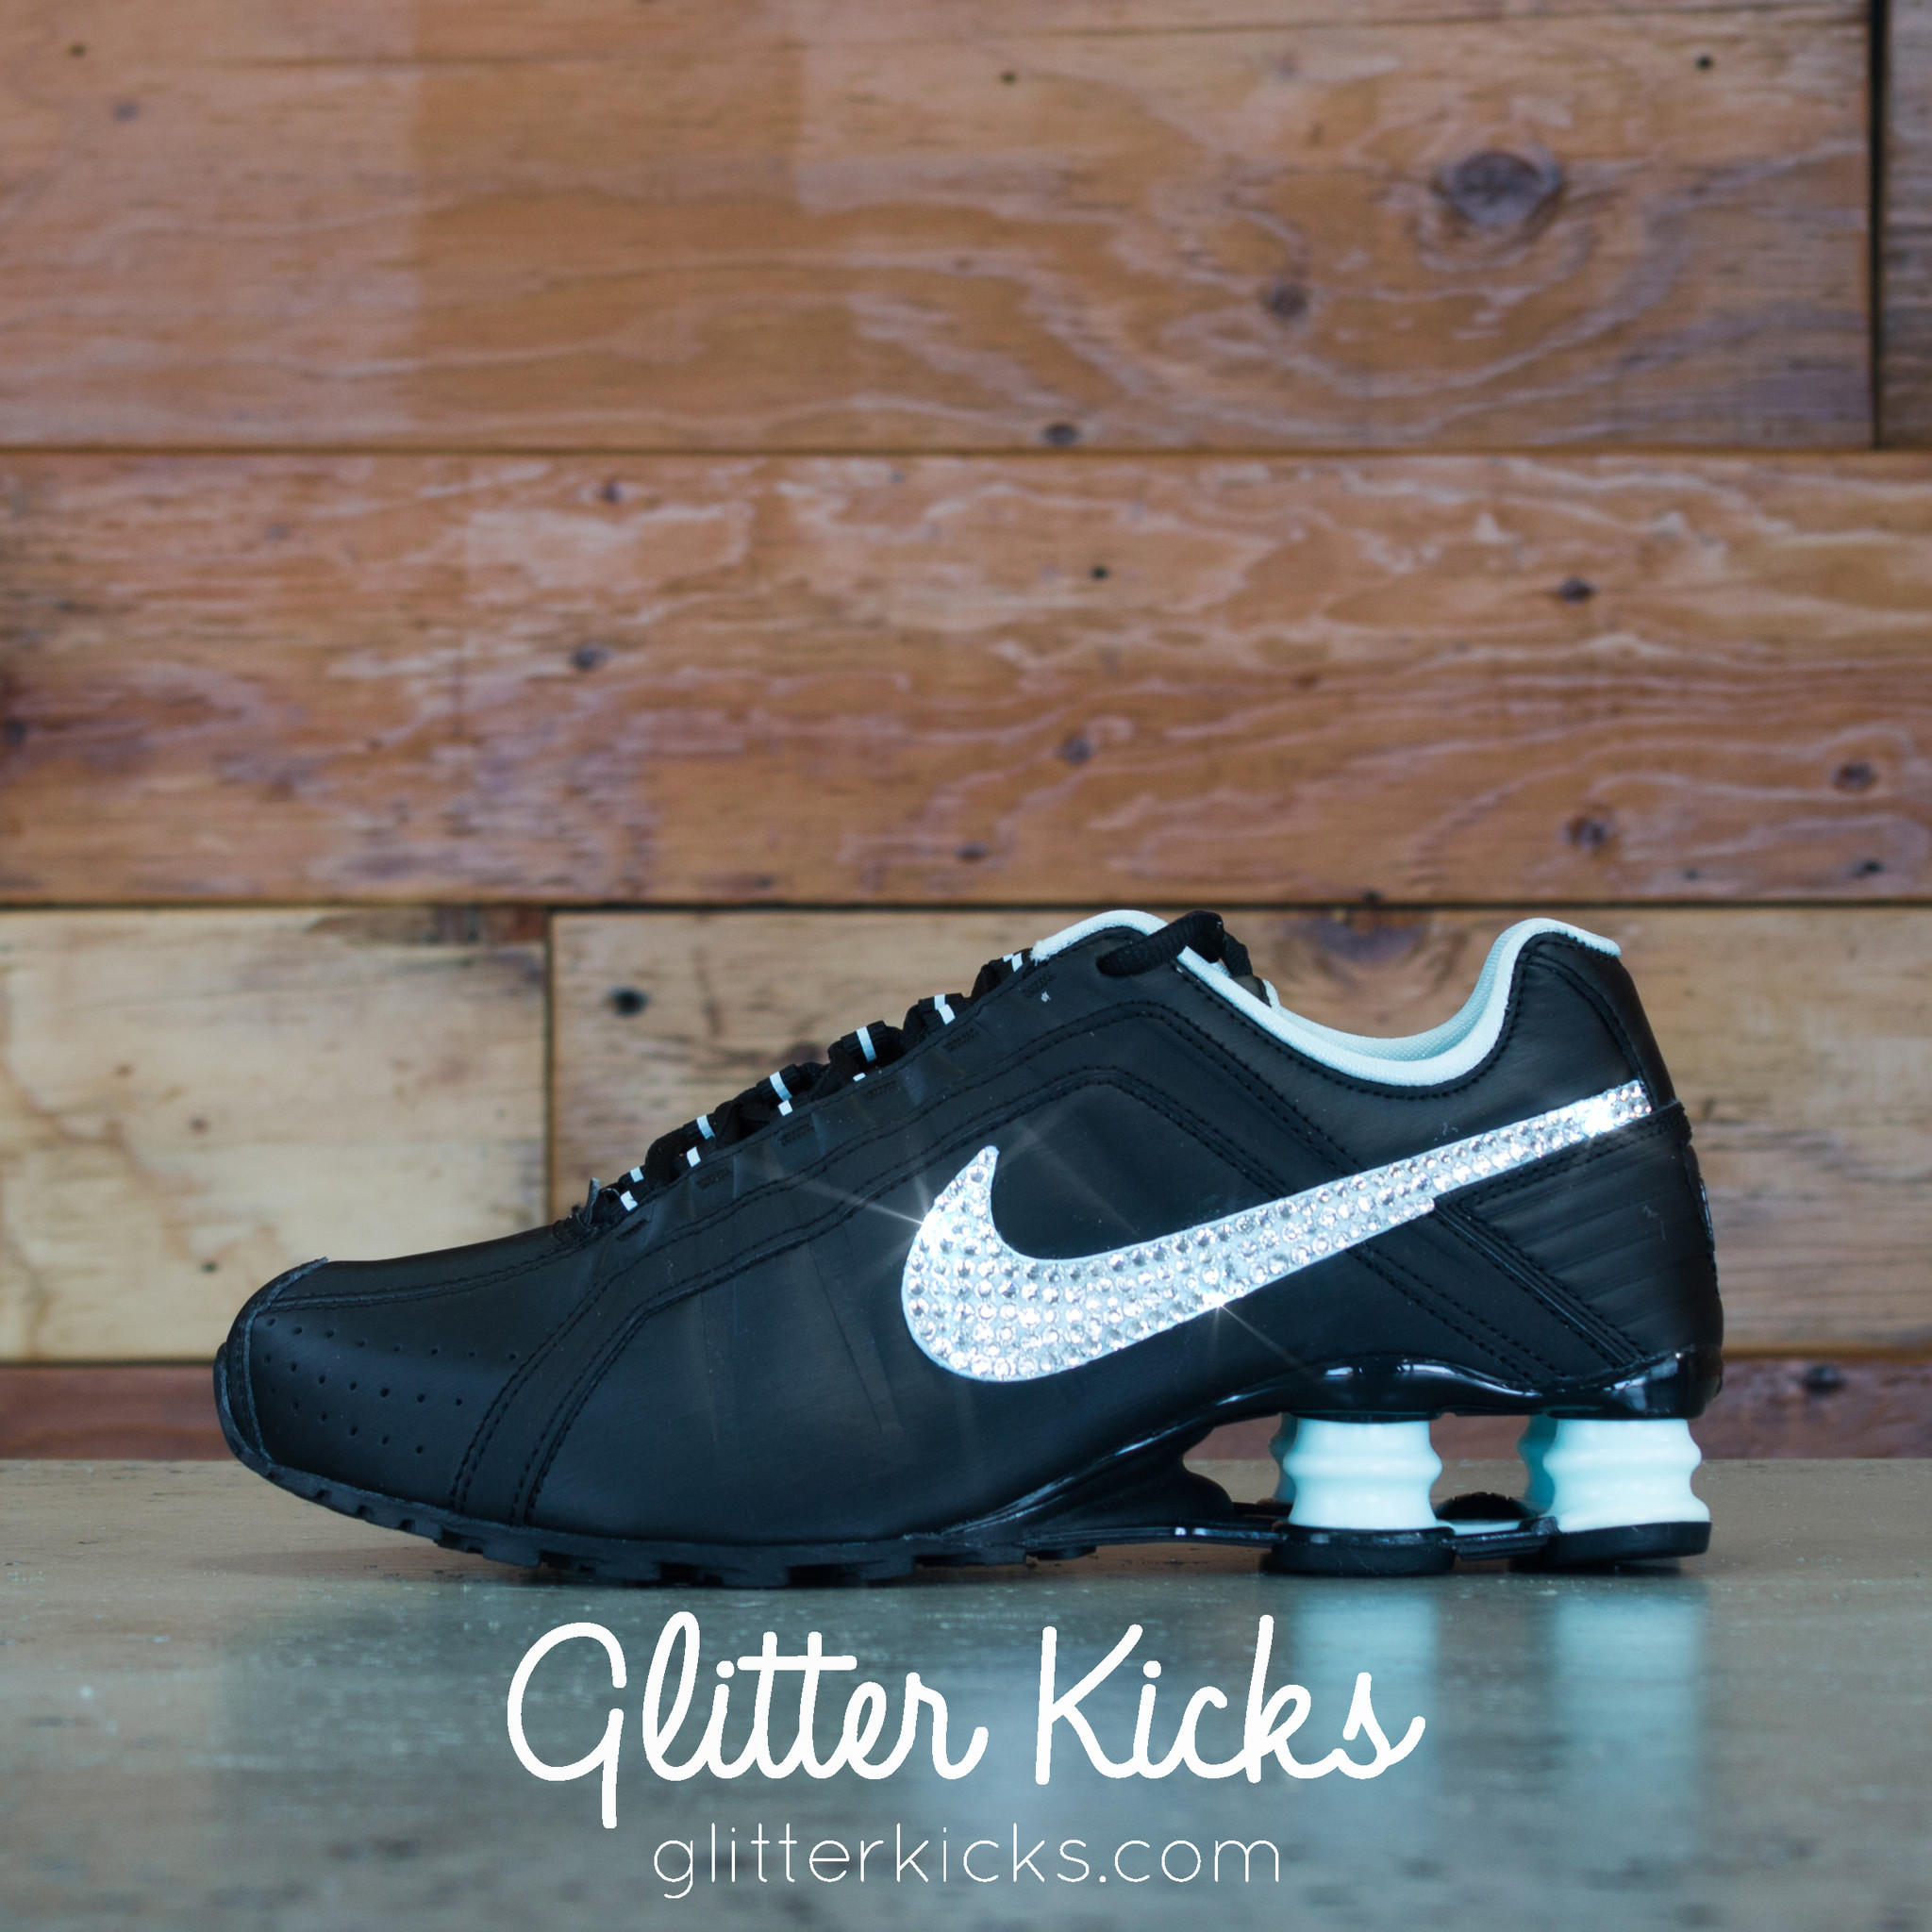 ... Nike Shox Current Glitter Kicks Running Shoes BlackTiffany. 17a19b3823